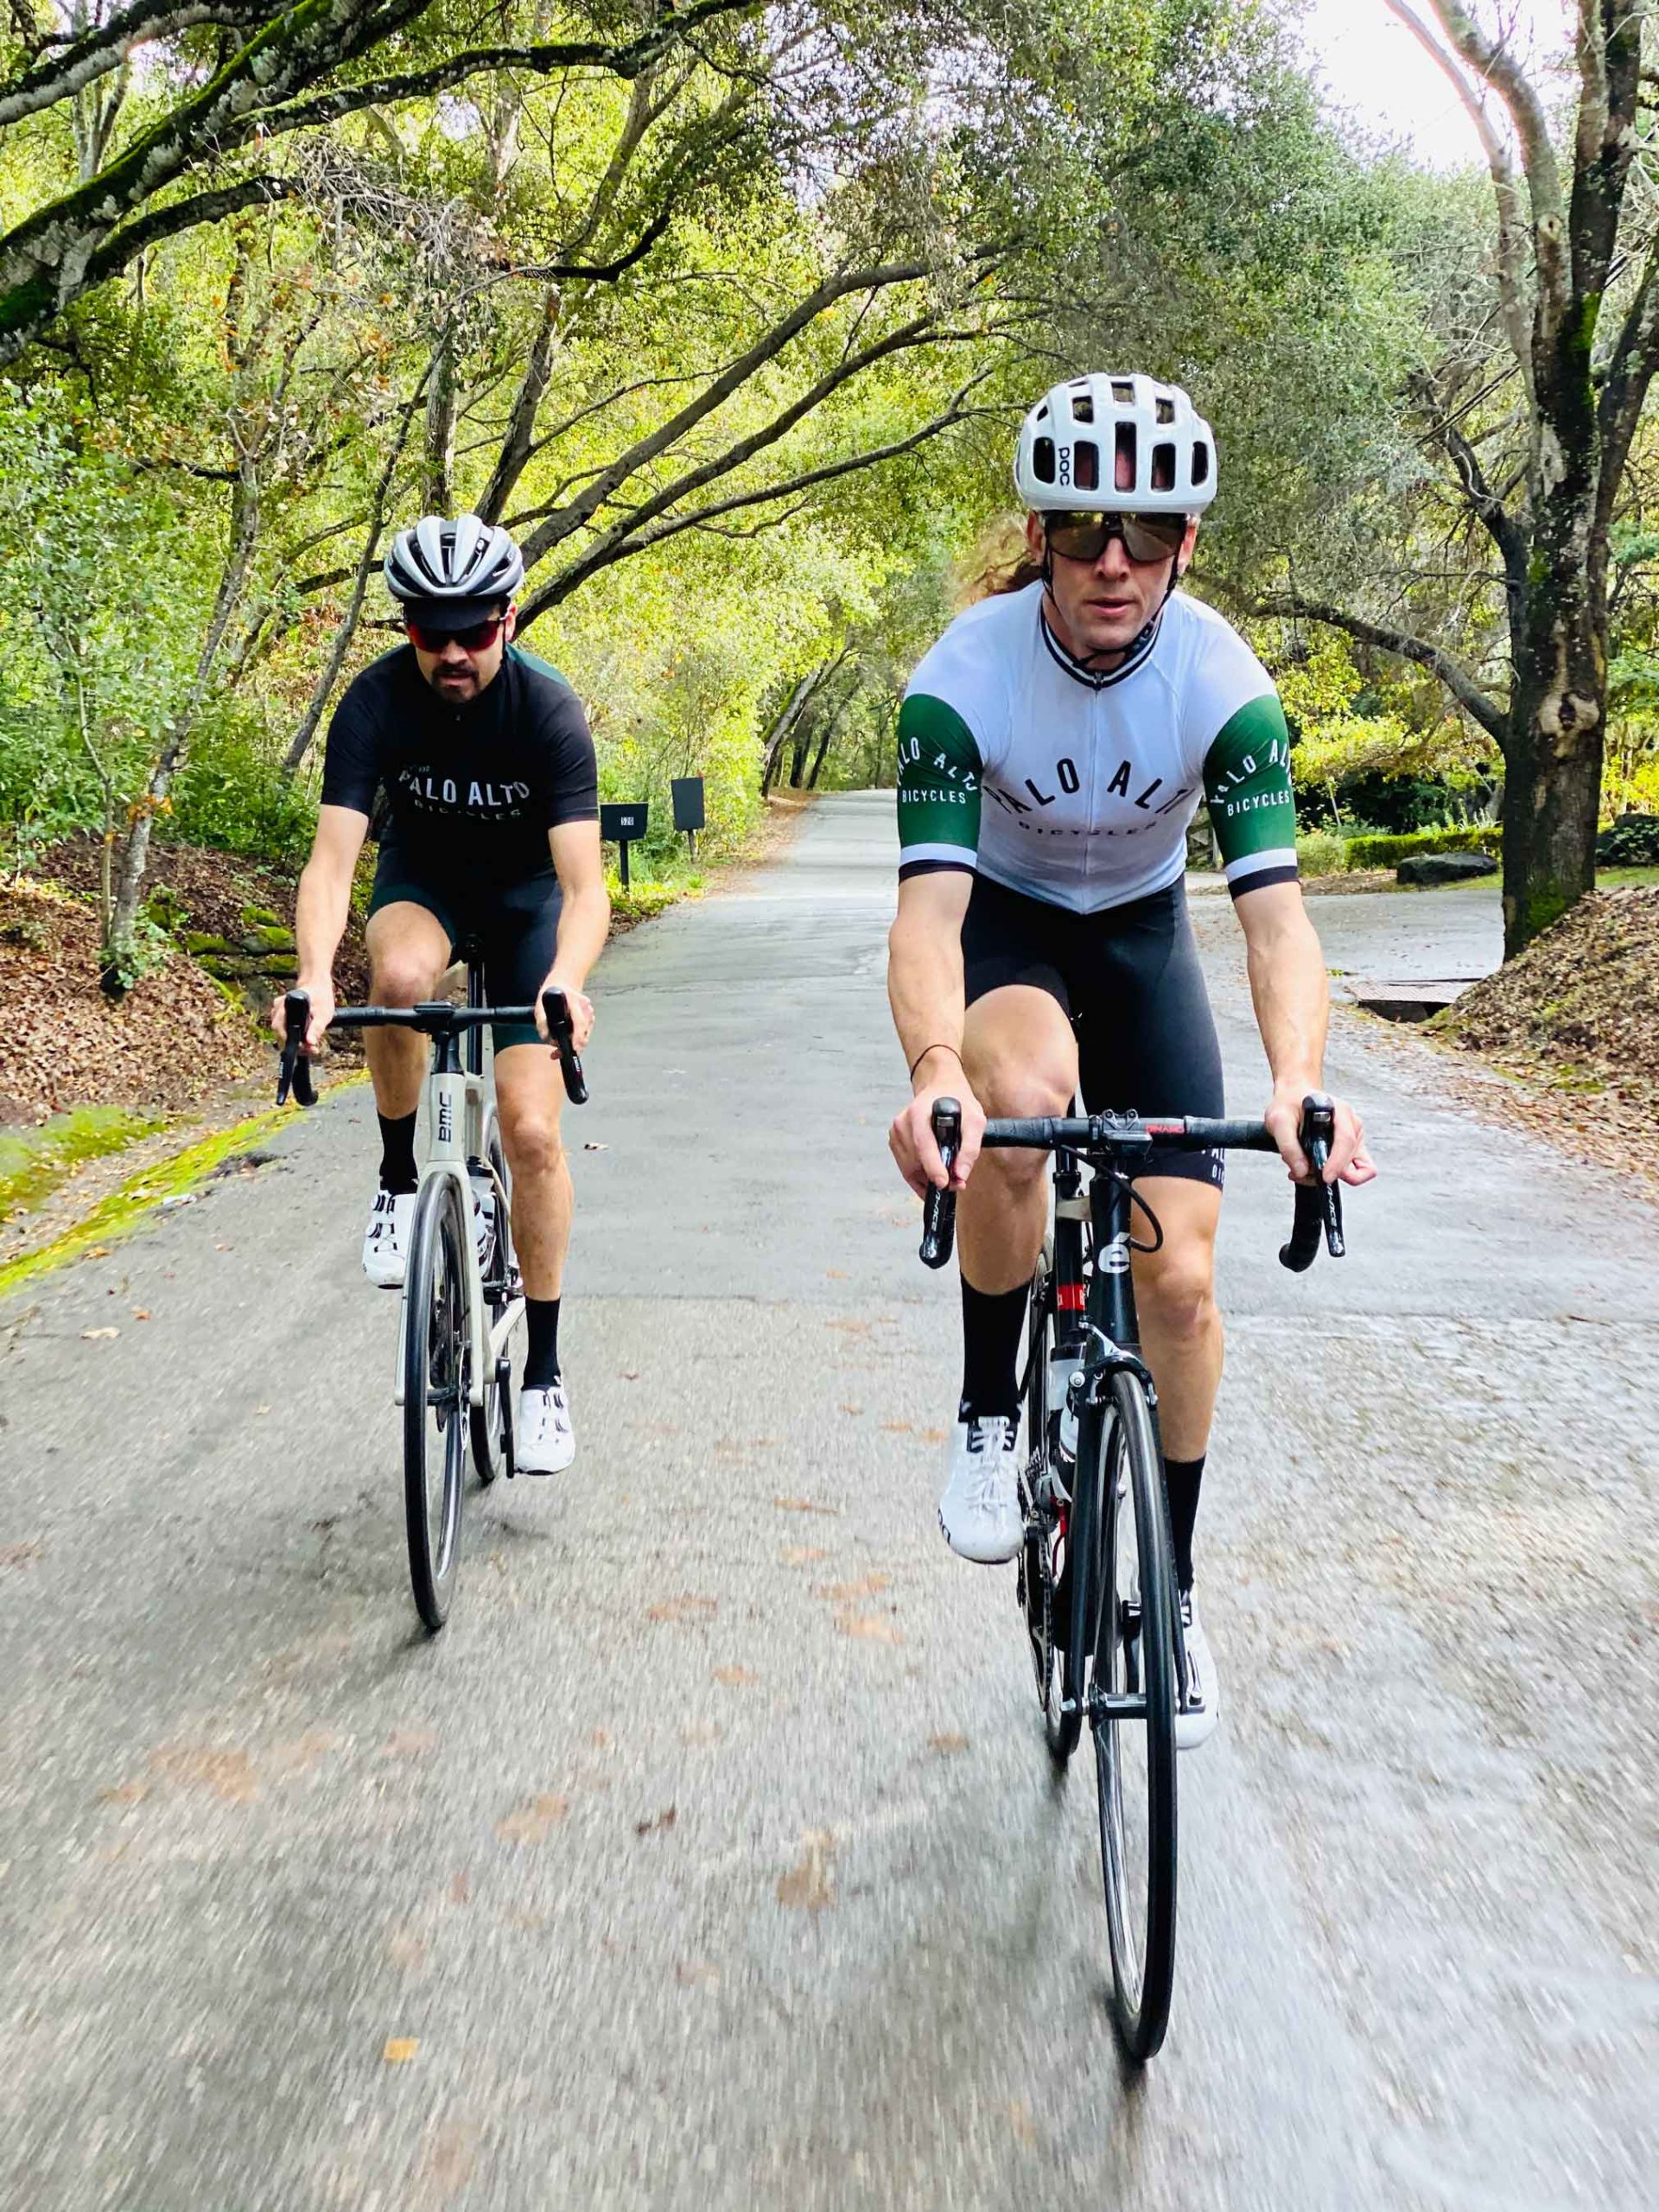 two men in palo alto shirts cycling on road